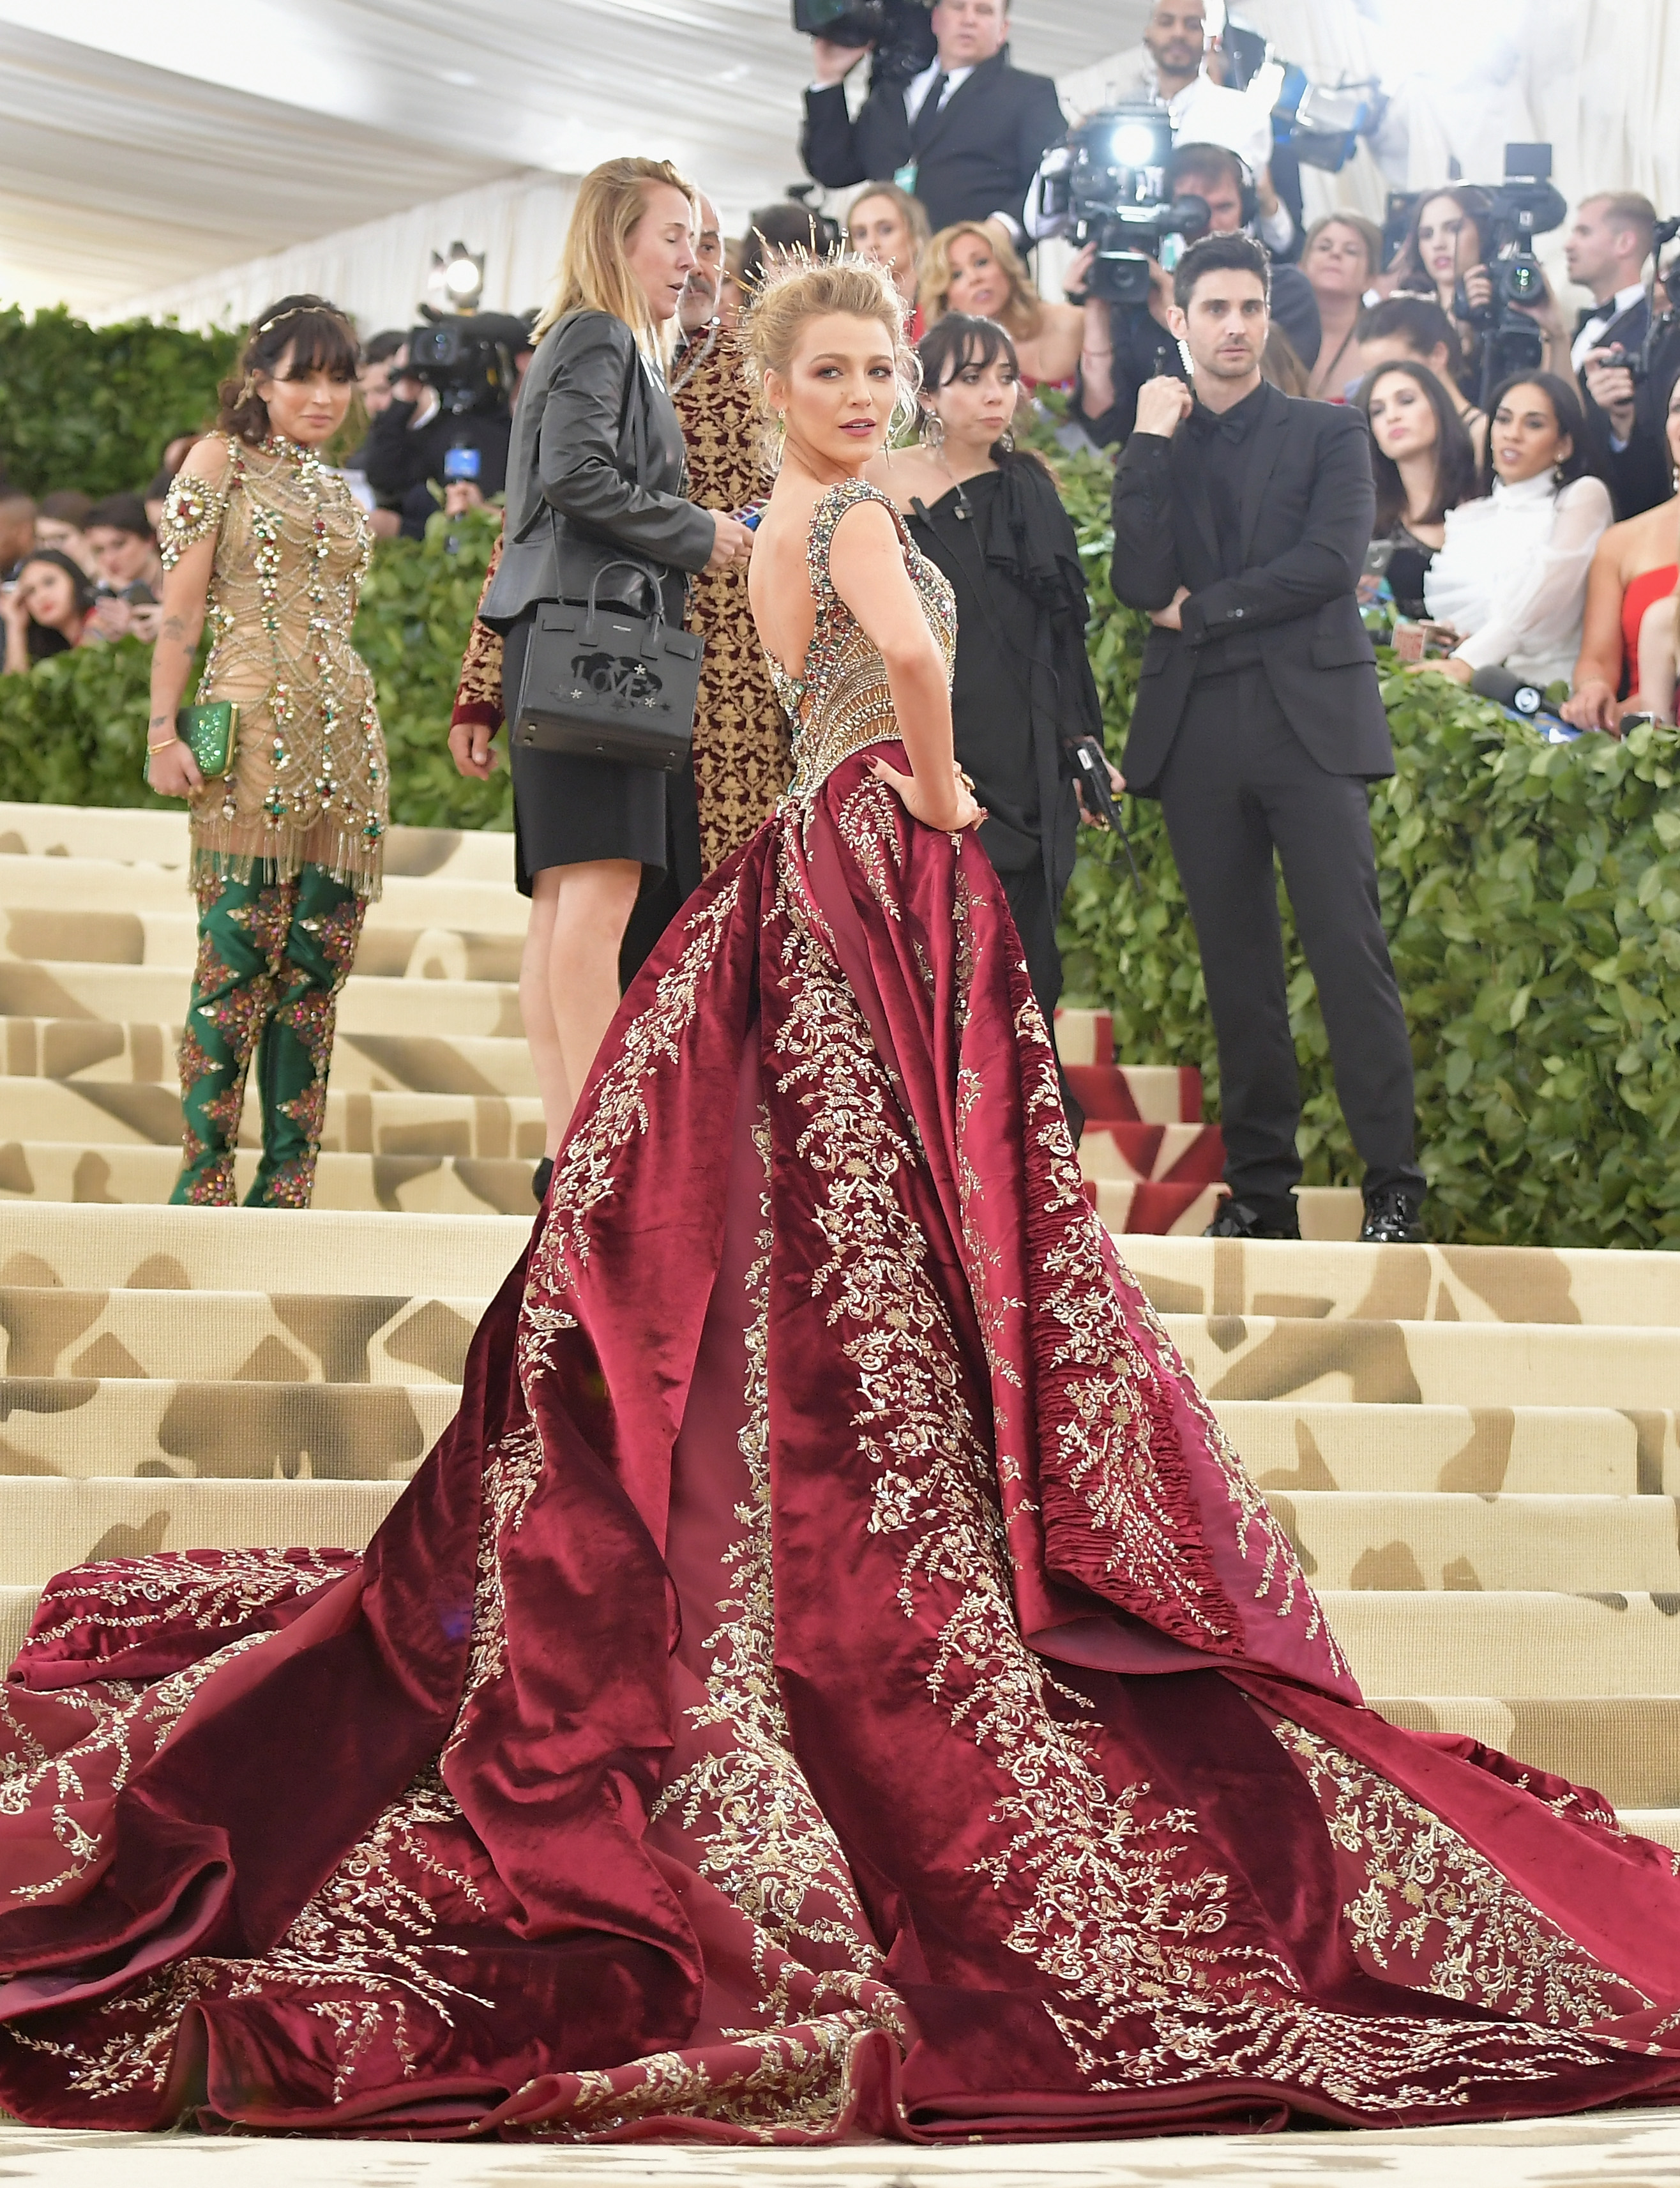 Blake Lively attends the Heavenly Bodies: Fashion & The Catholic Imagination Costume Institute Gala at The Metropolitan Museum of Art on May 7, 2018 in New York City. (Photo by Jamie McCarthy/Getty Images)